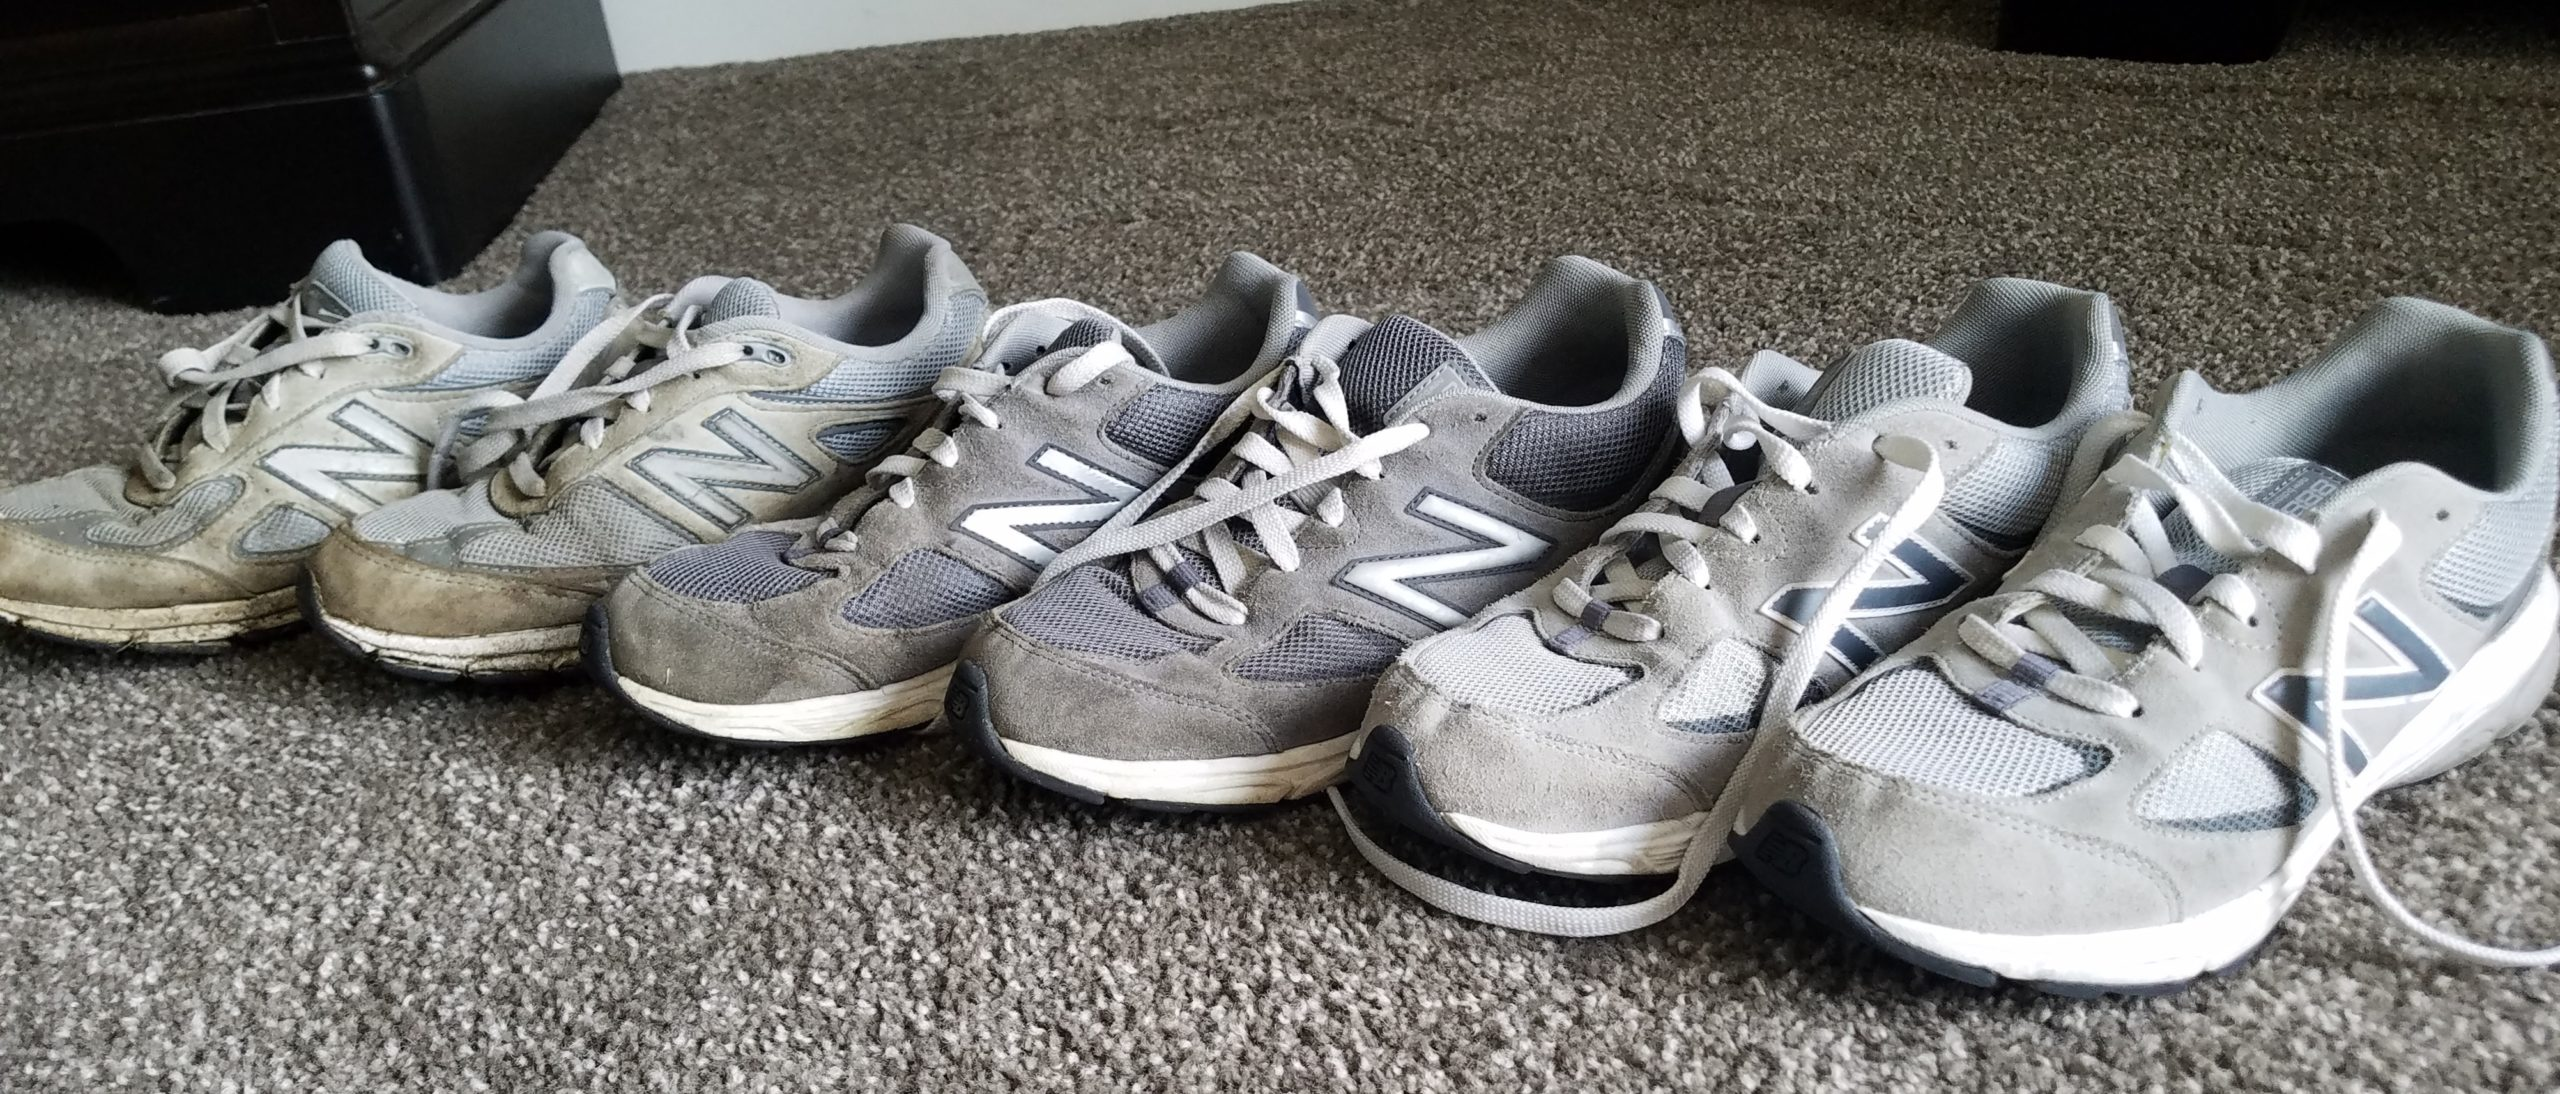 Lawnmowing Footwear New Balance